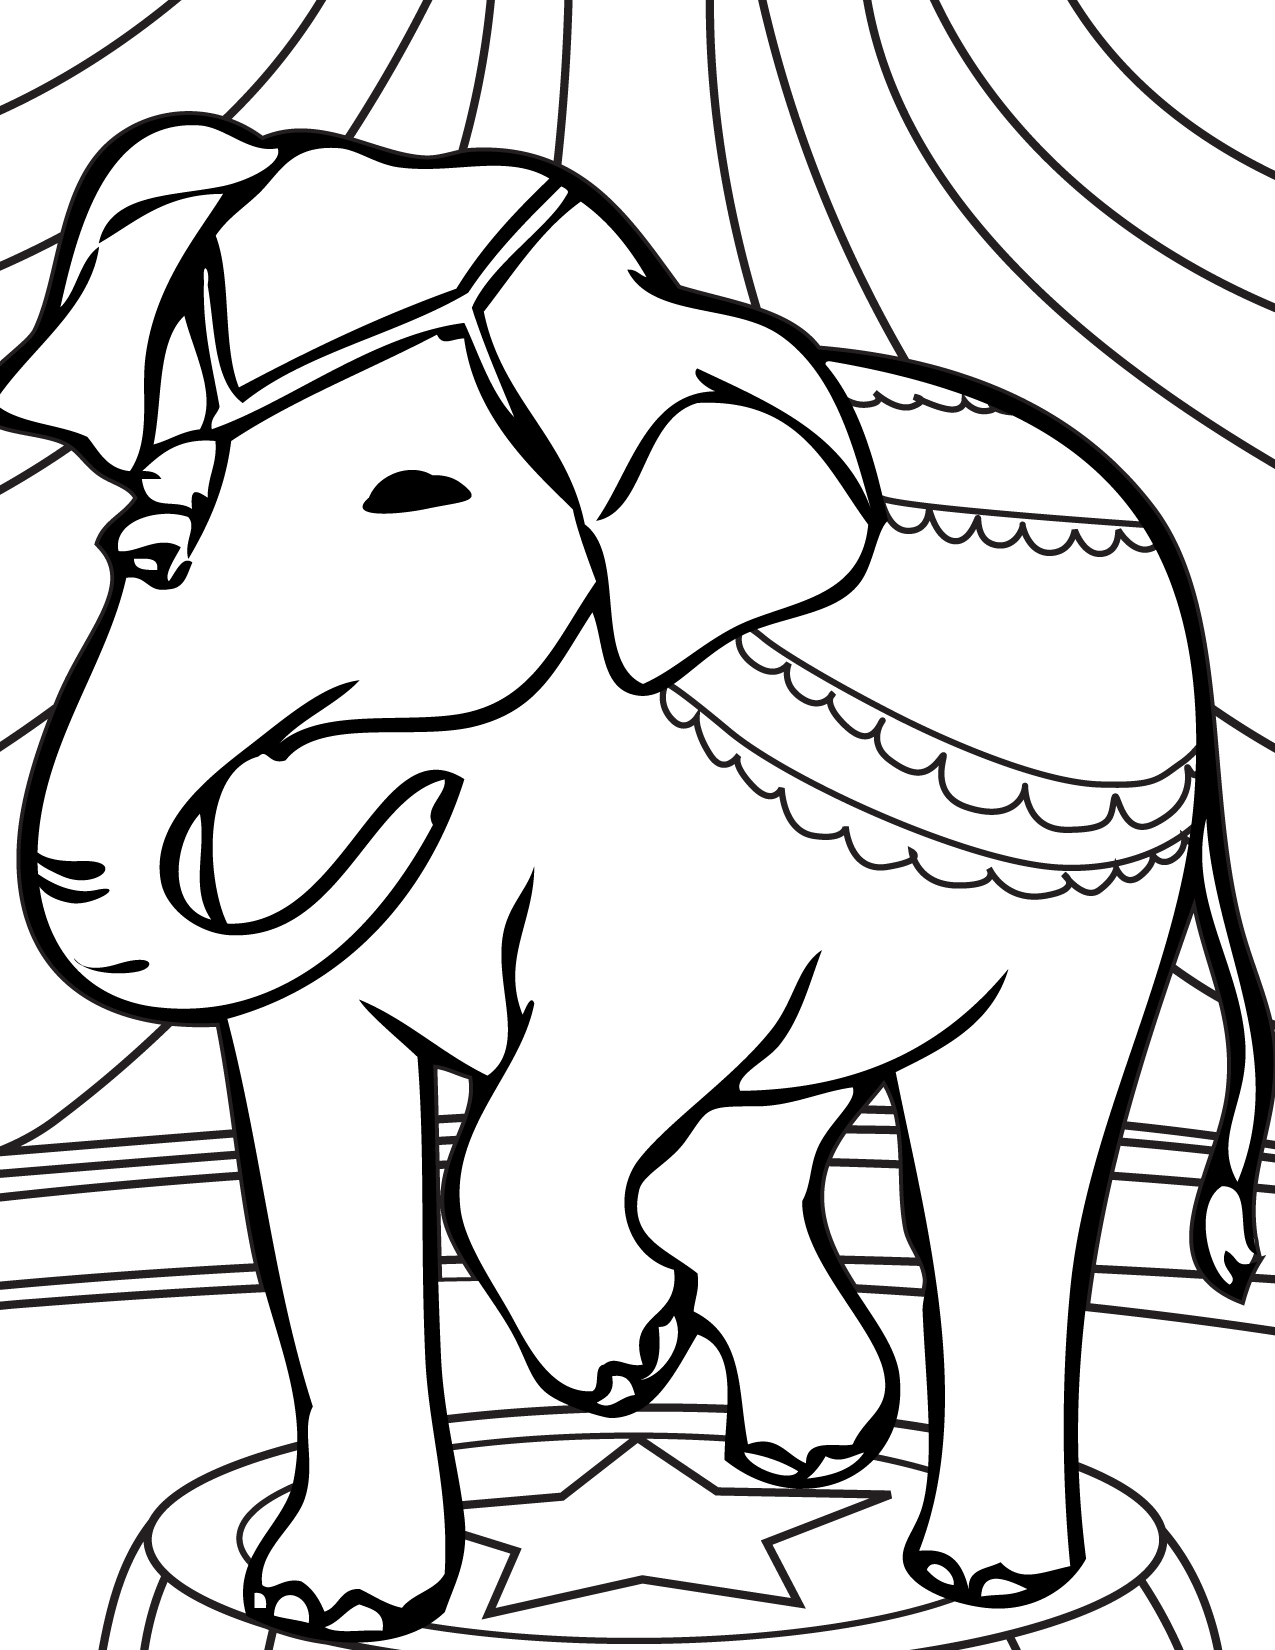 Circus elephant coloring pages only coloring pages for Printable circus coloring pages